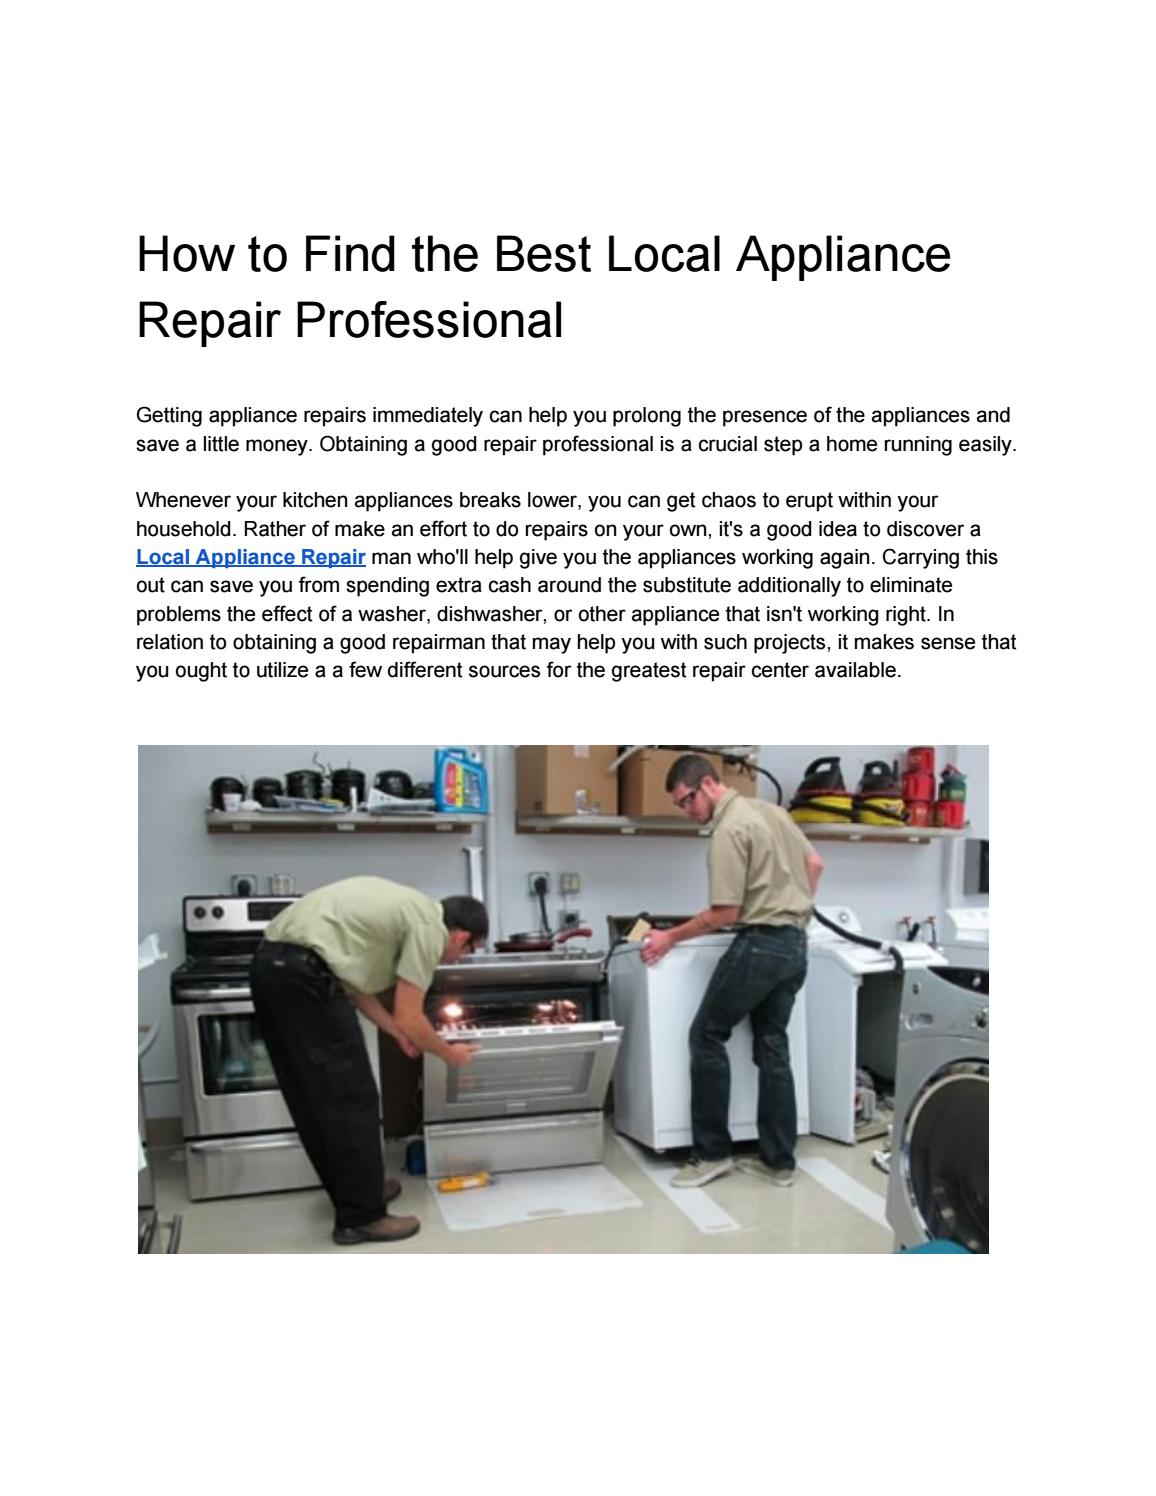 How to Find the Best Local Appliance Repair Professional by